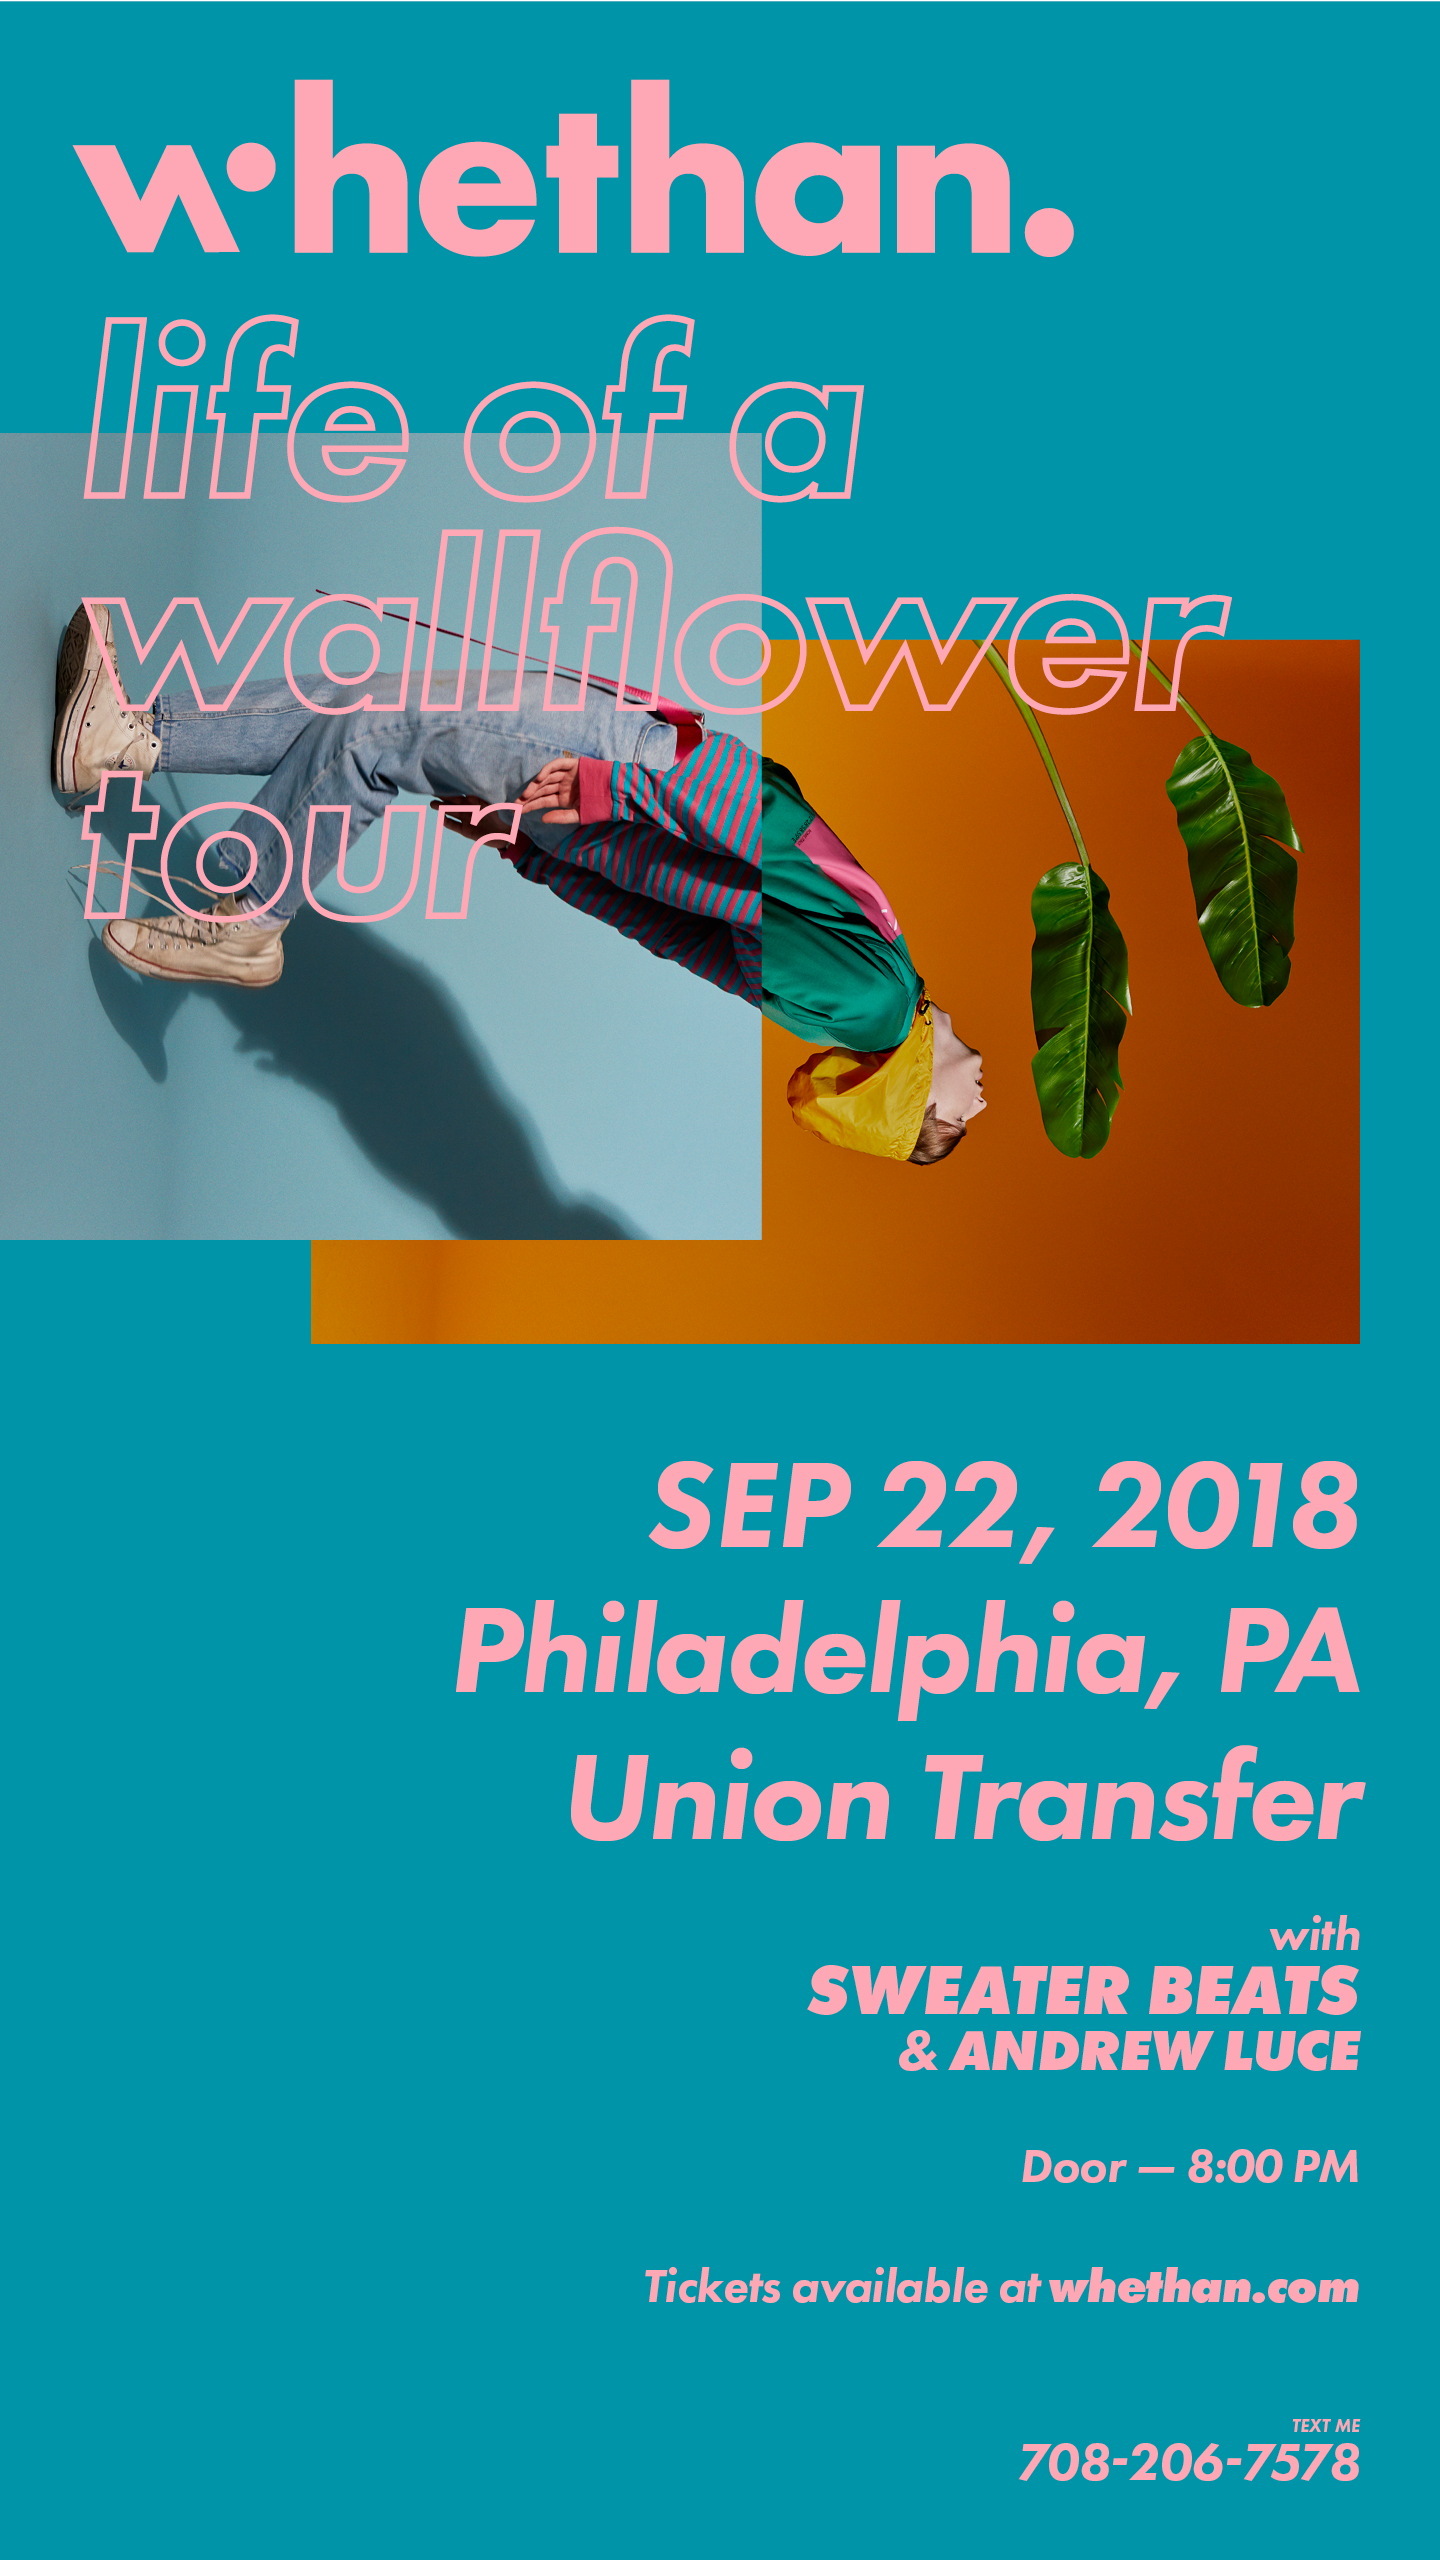 Whethan_2018_Fall-tour_Snapchat2.png